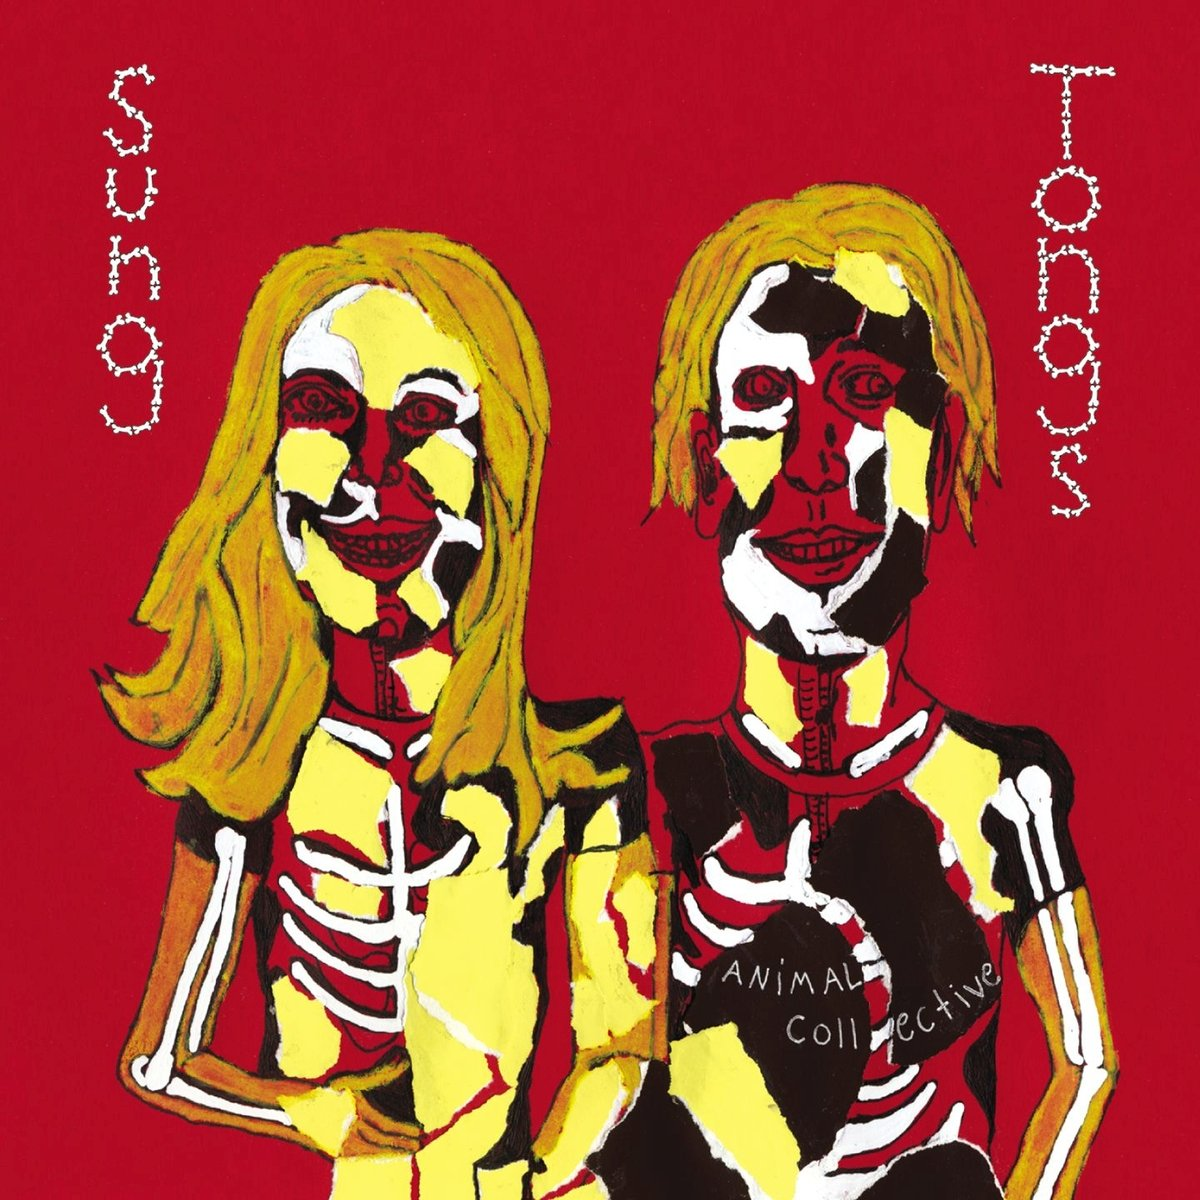 """Animal Collective's """"Sung Tongs"""" Album Cover"""